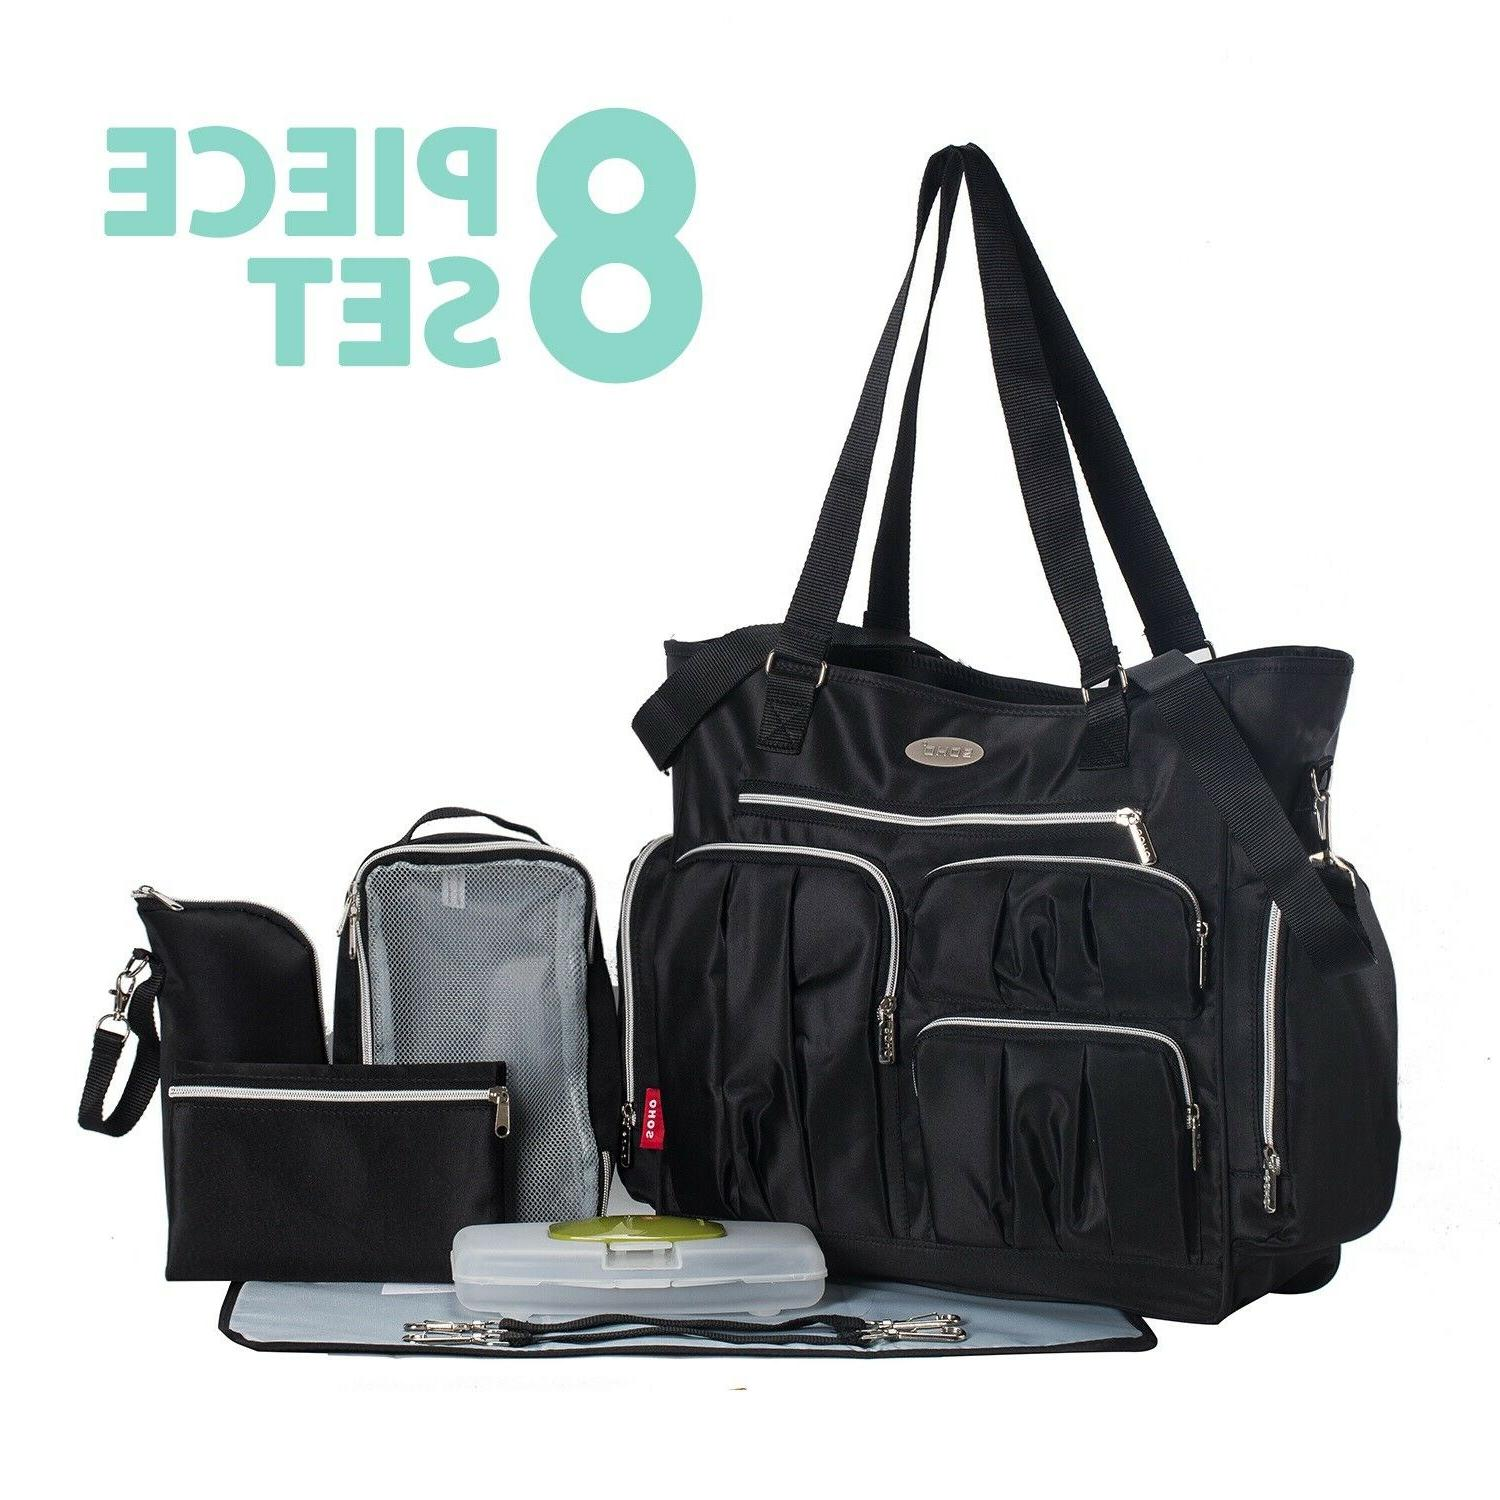 Baby Trend Seat Bag